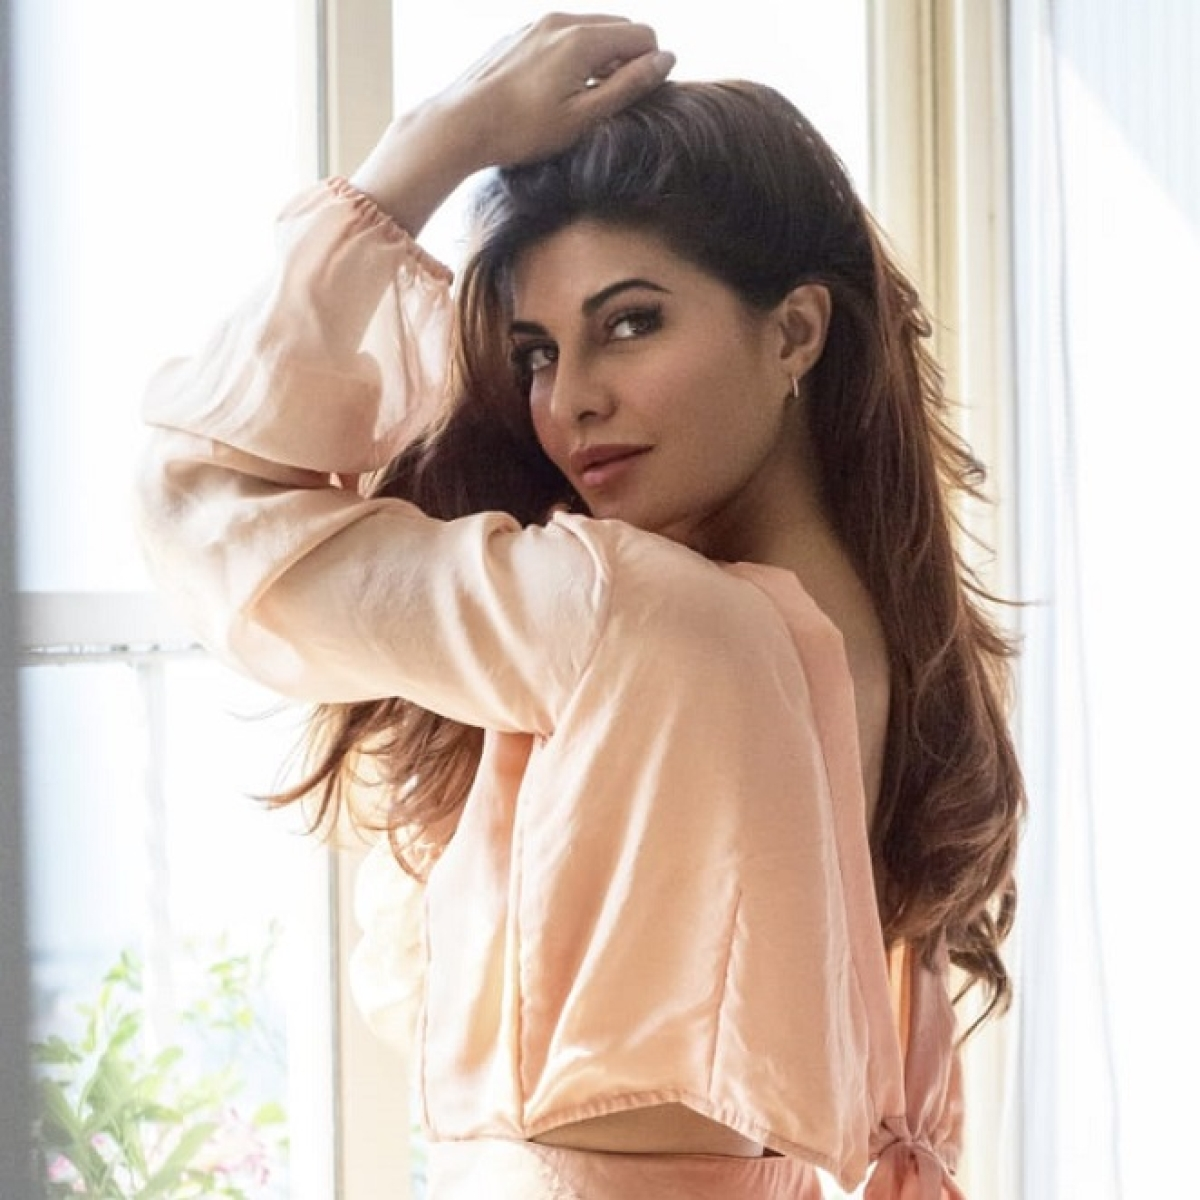 2020 has been a professionally fulfilling year for Jacqueline Fernandez